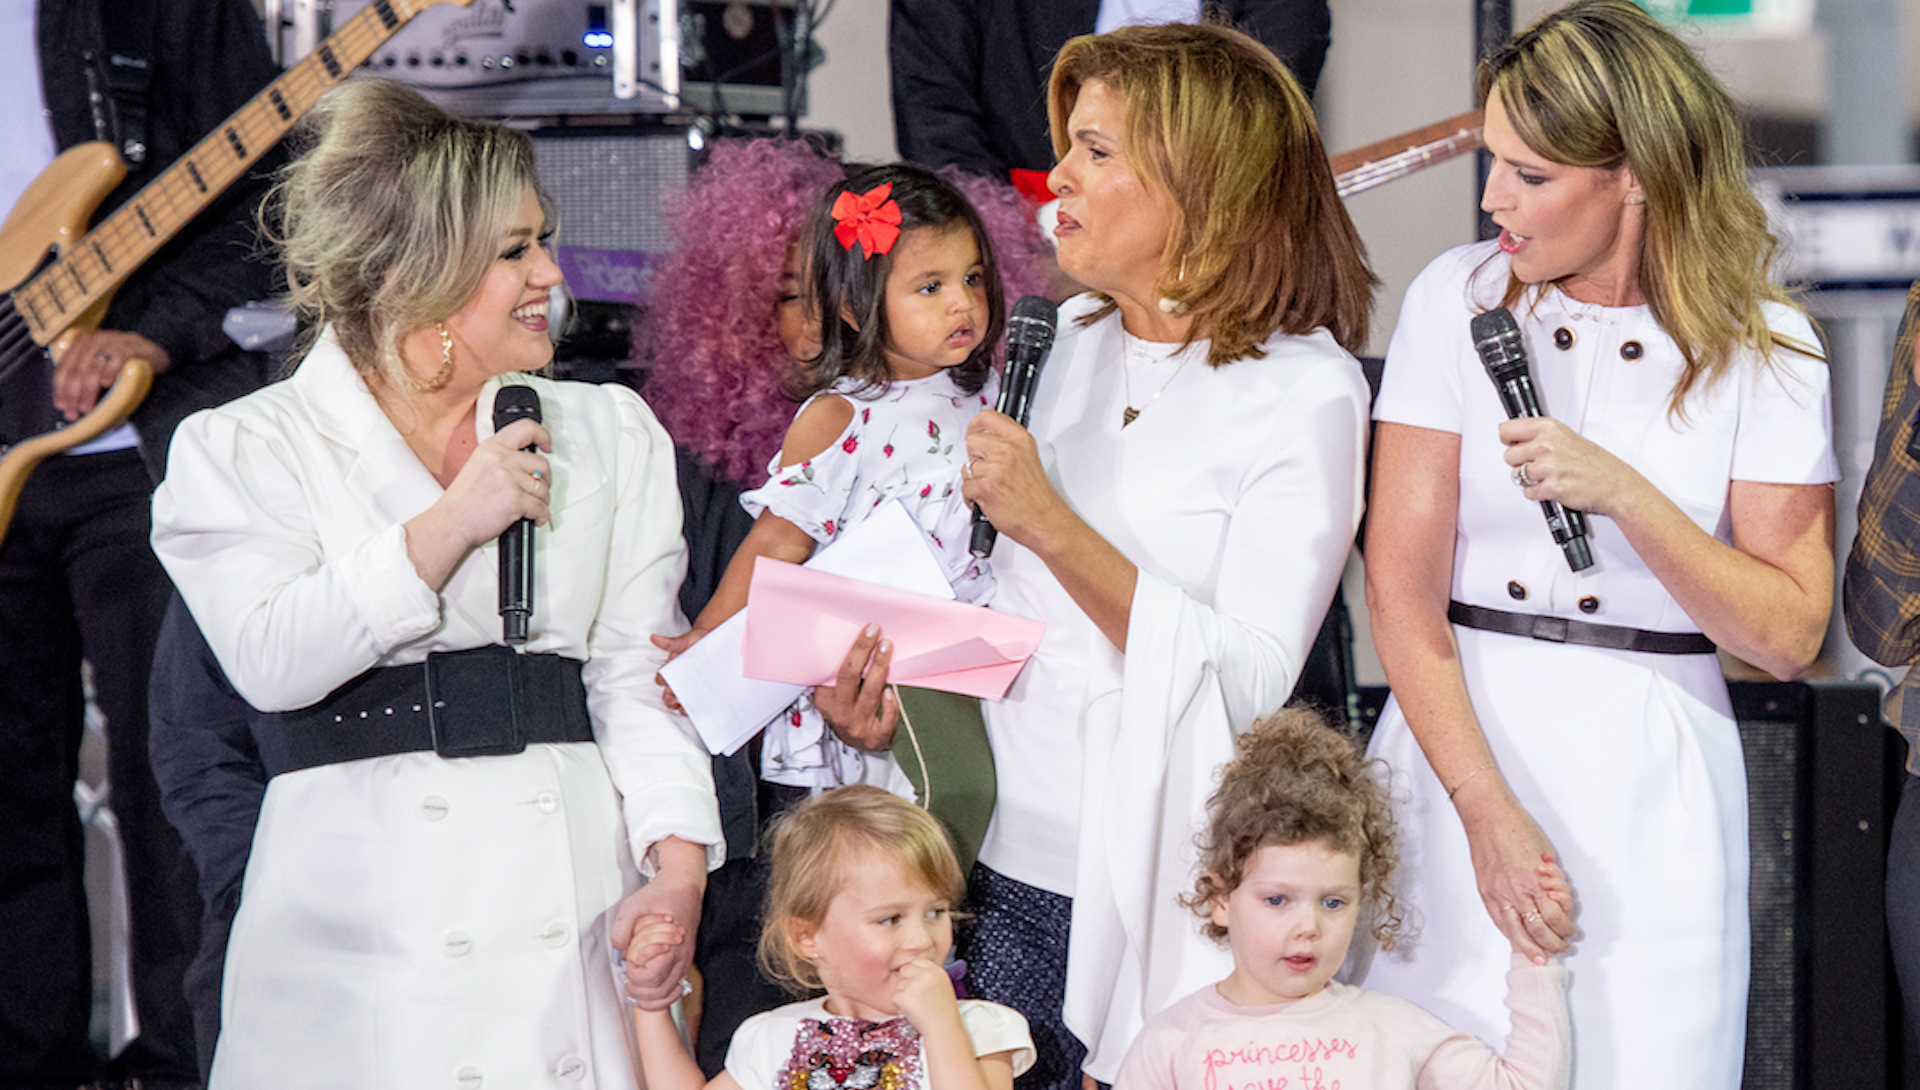 New Bffs Kelly Clarkson Savannah Guthrie S Daughters Are Inseparable Sheknows